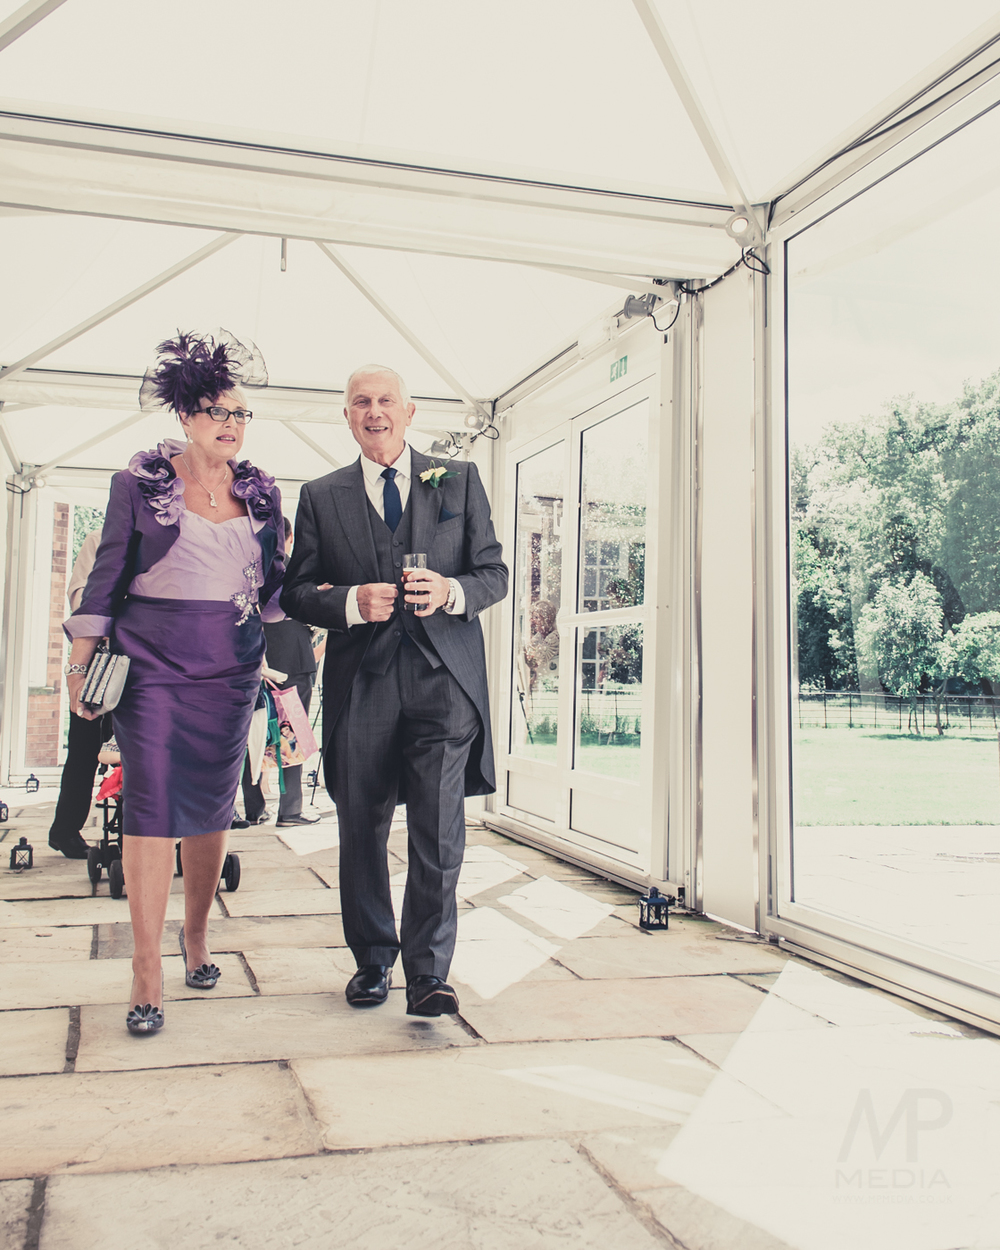 478 - Chris and Natalies Wedding (MAIN) - DO NOT SHARE THIS IMAGES ONLINE -4740.JPG